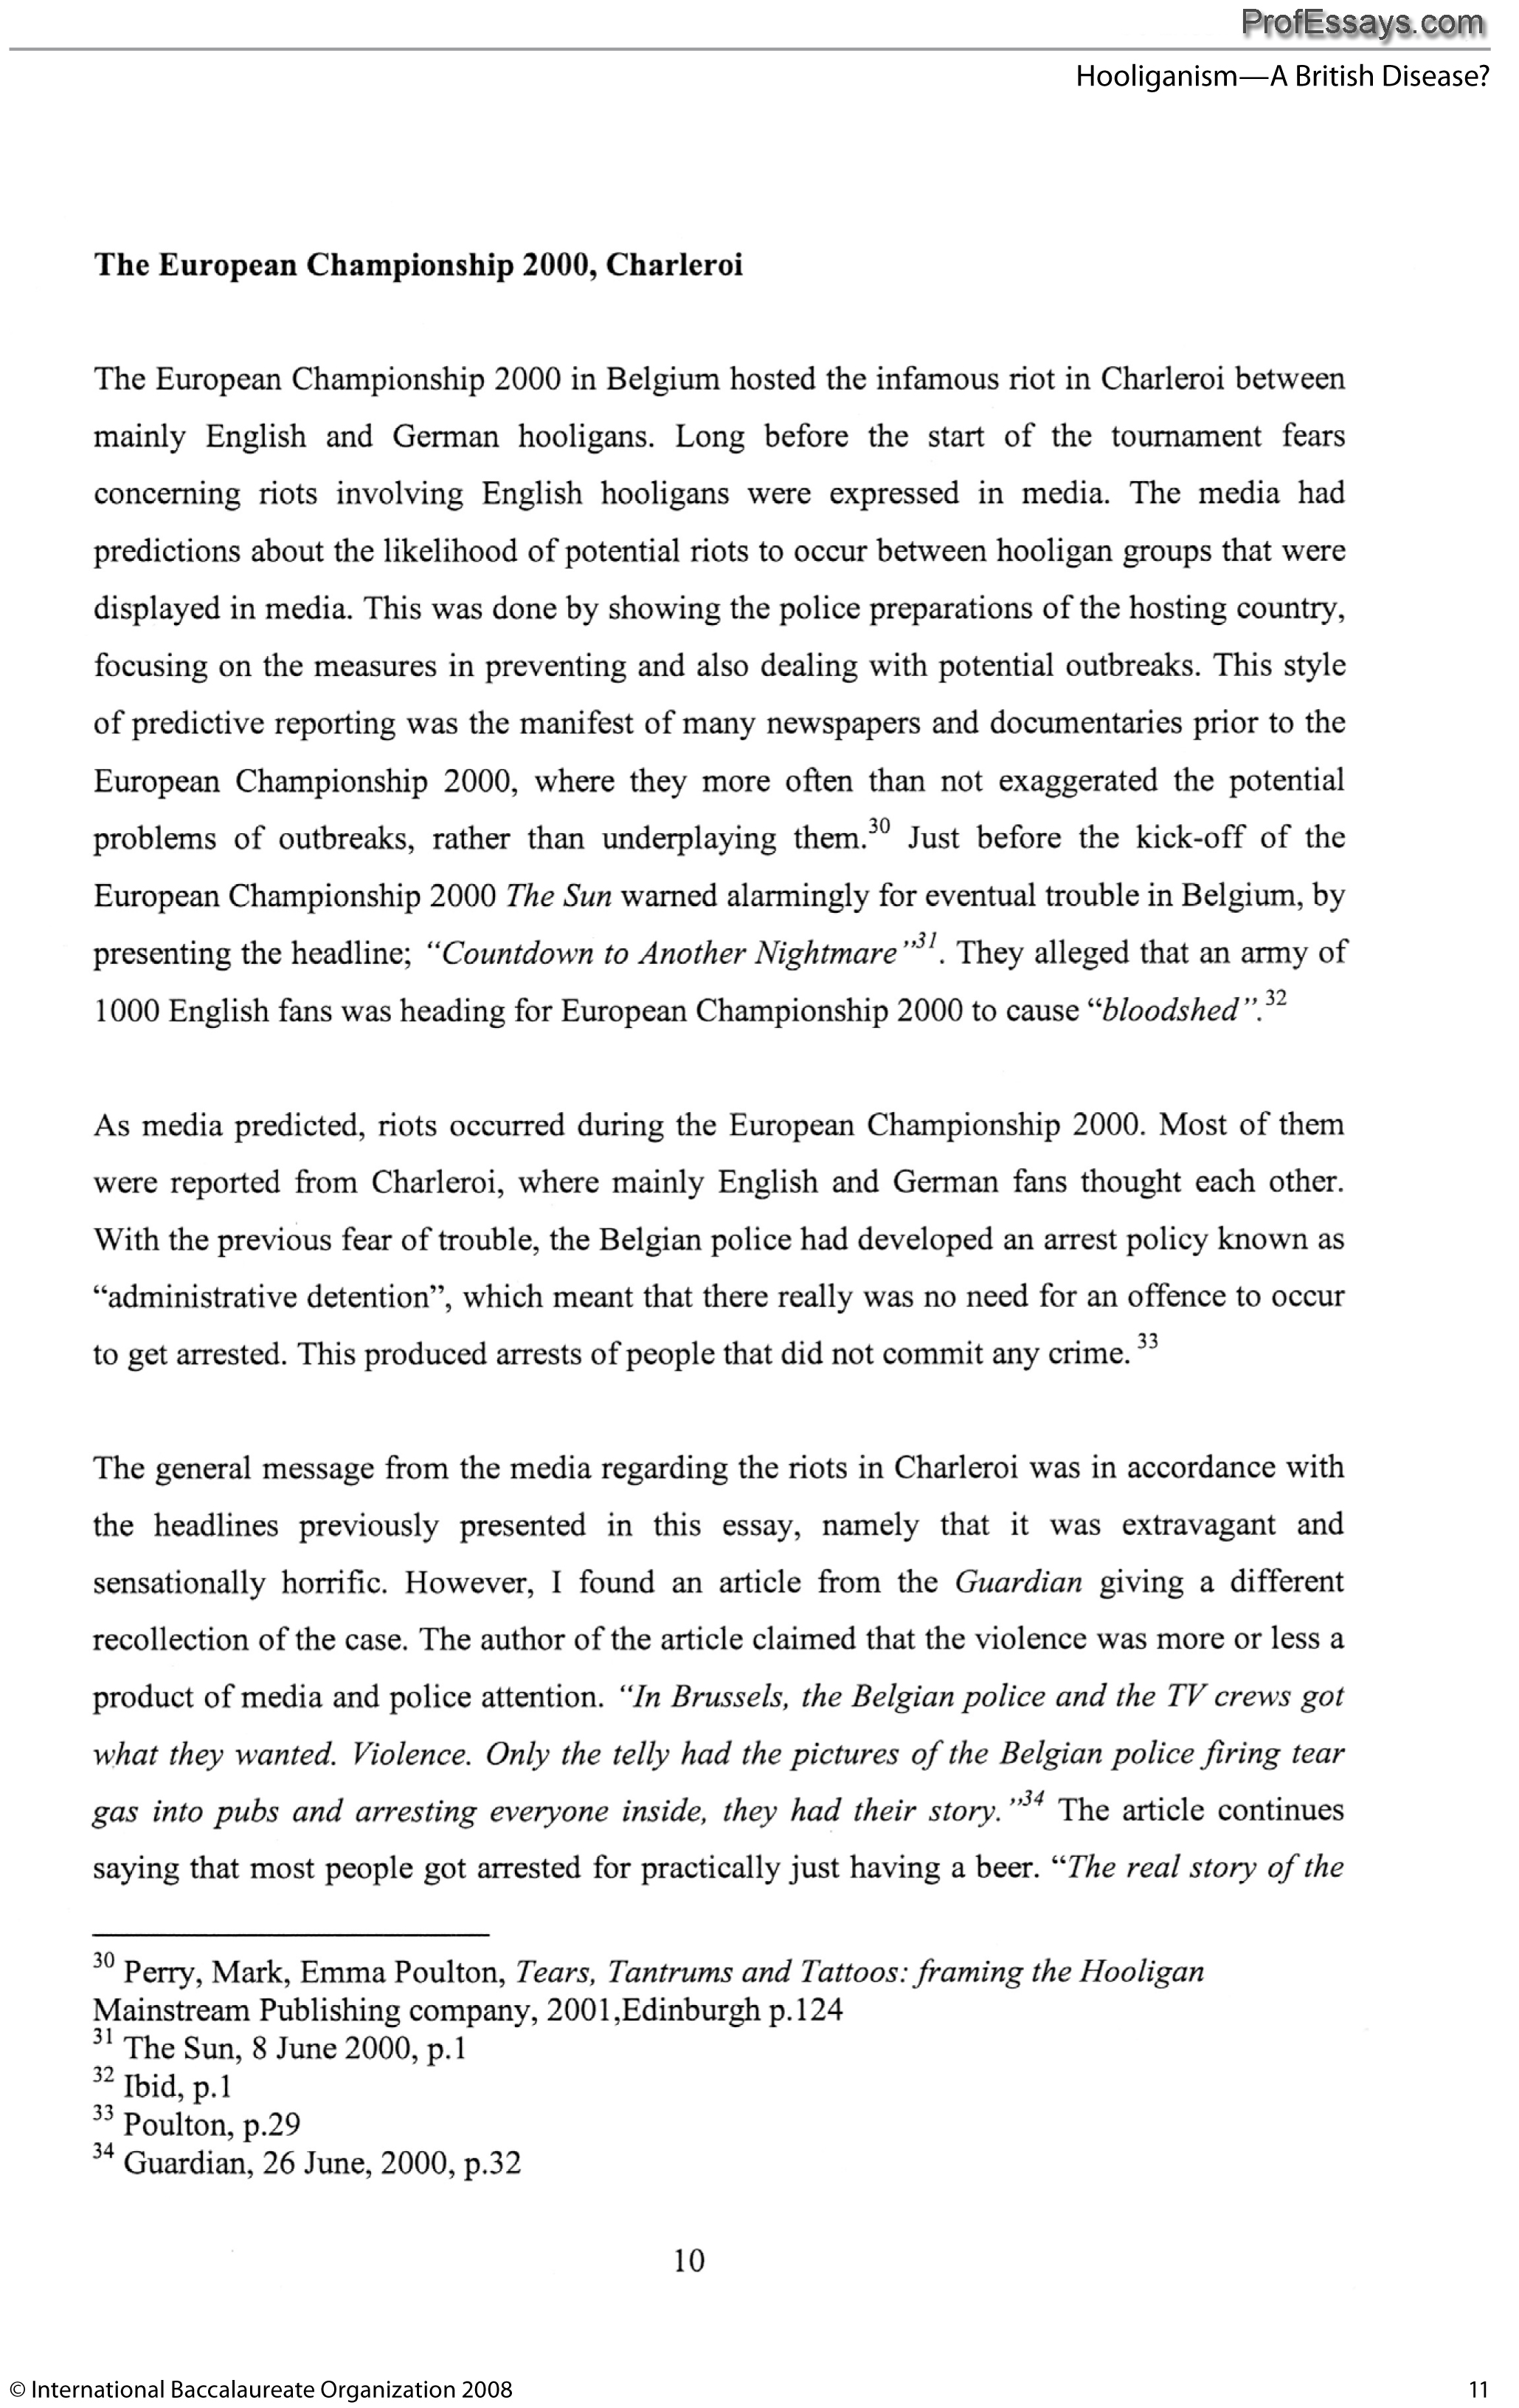 005 Art Essay Examples Example Ib Extended Free Formidable Conclusion School A2 Full